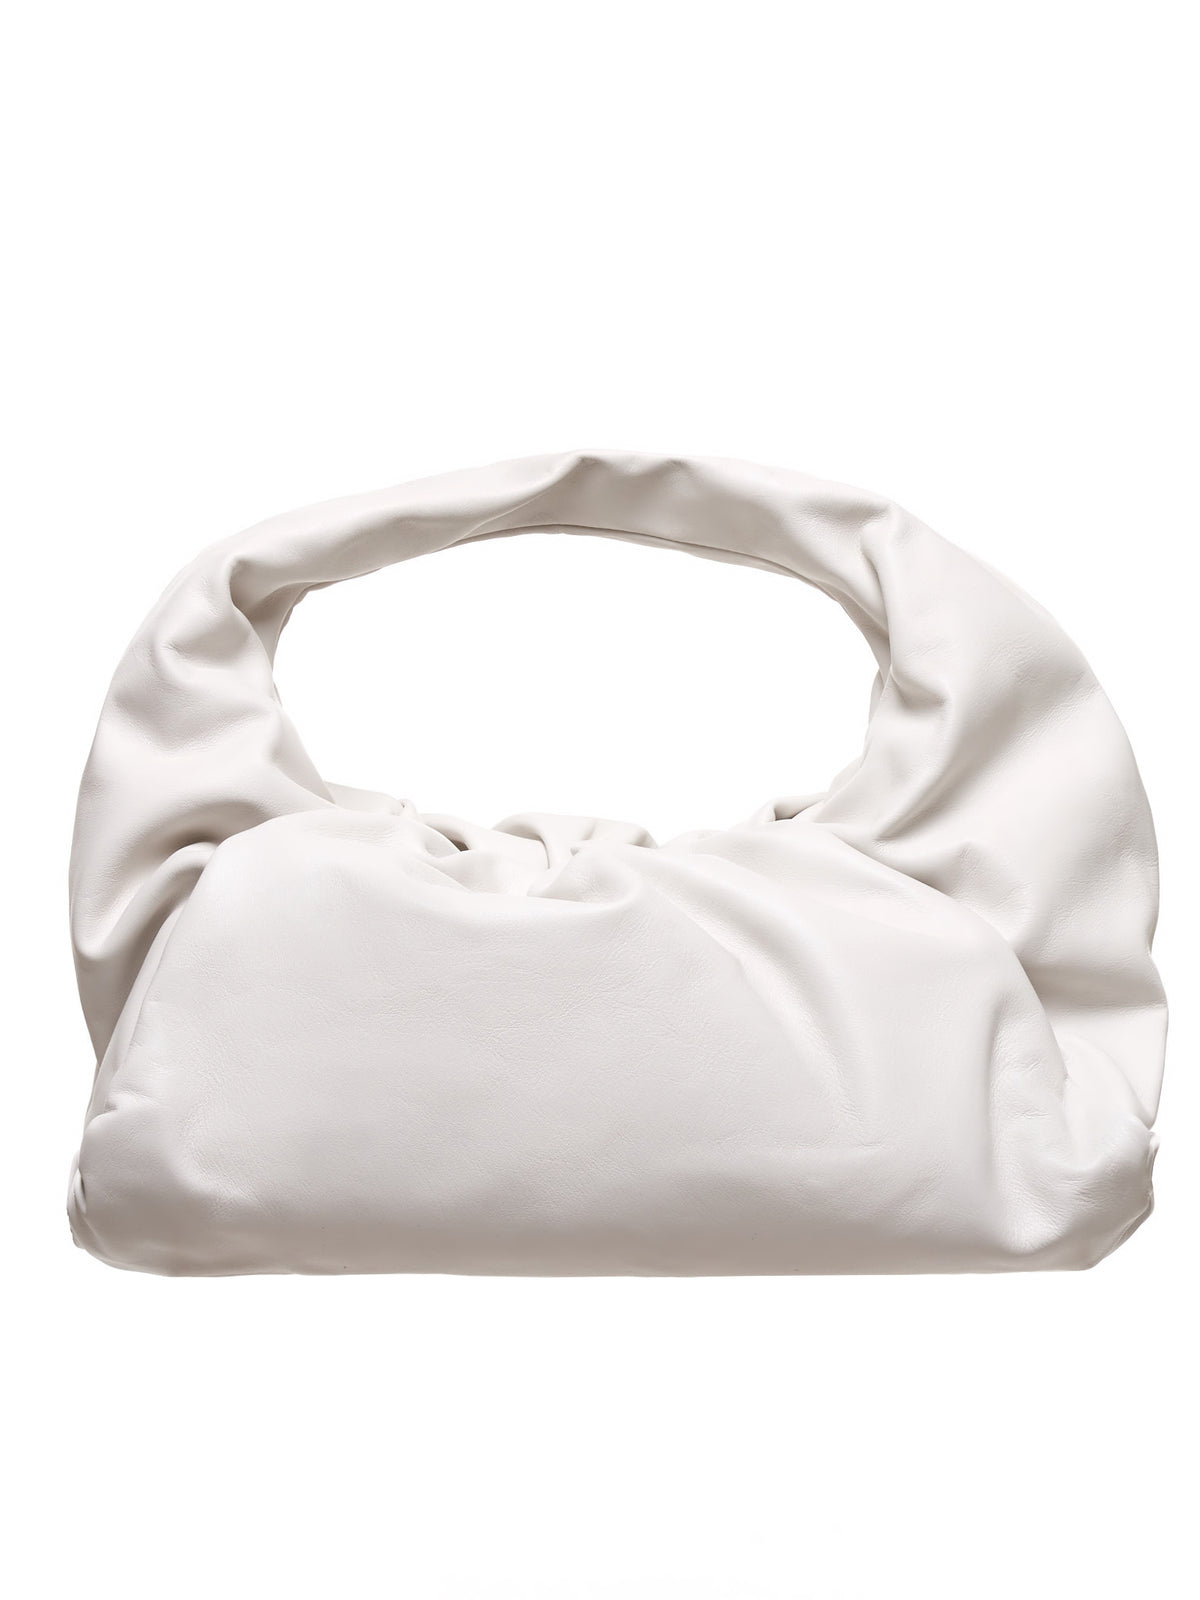 The Shoulder Pouch (610524VCP40-9007-BIANCO-SILVER)